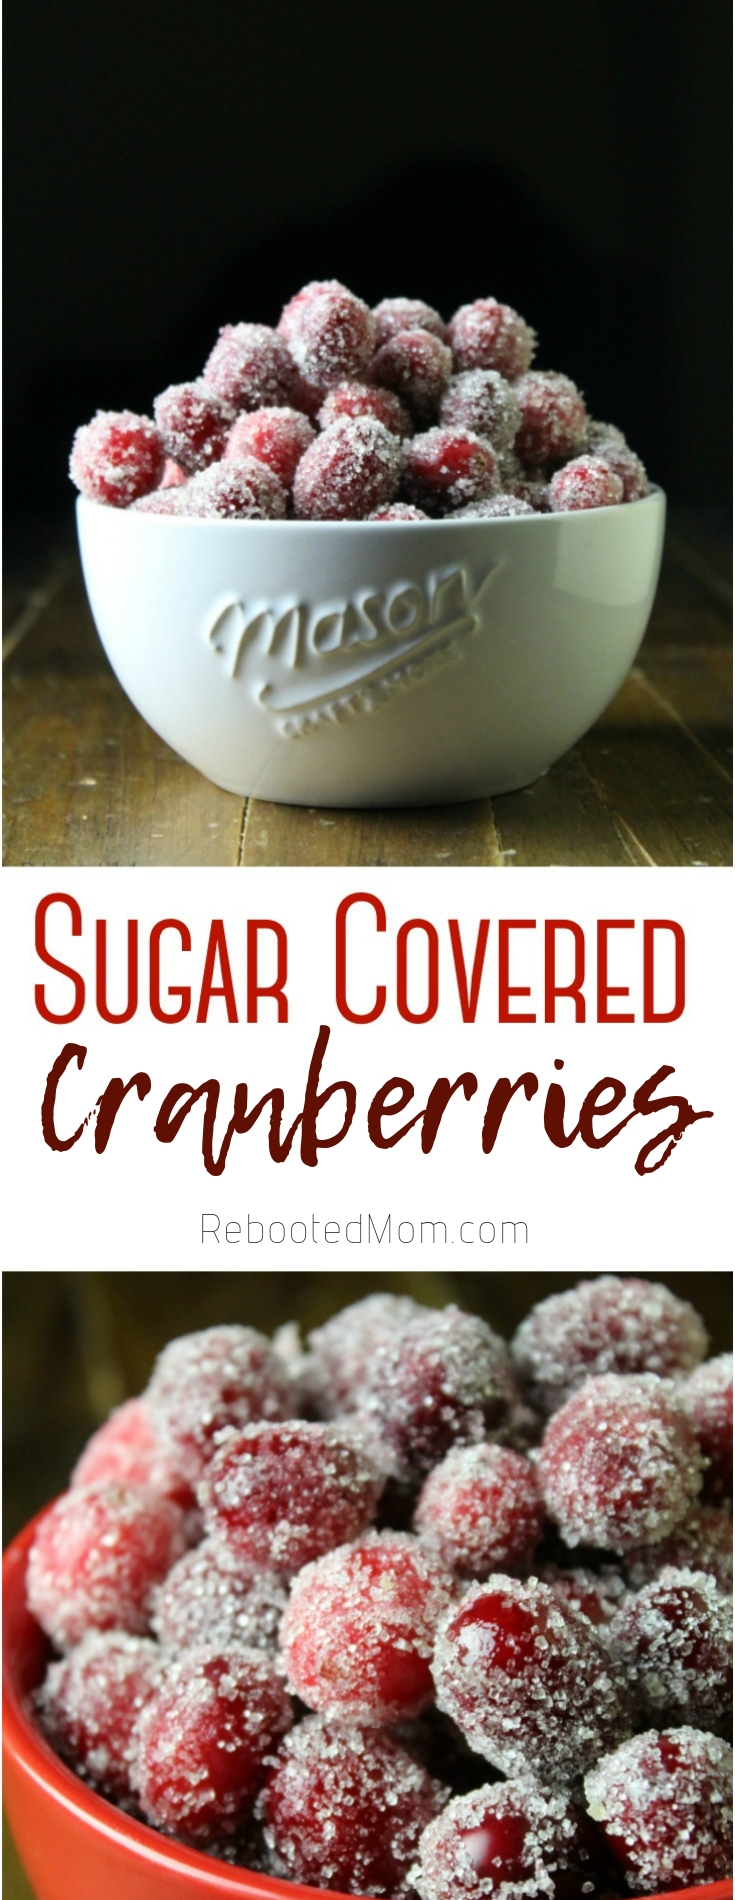 Learn how to make sugar covered cranberries. These morsels of yum are a combination of tangy and sweet and  make a delicious appetizer or snack!